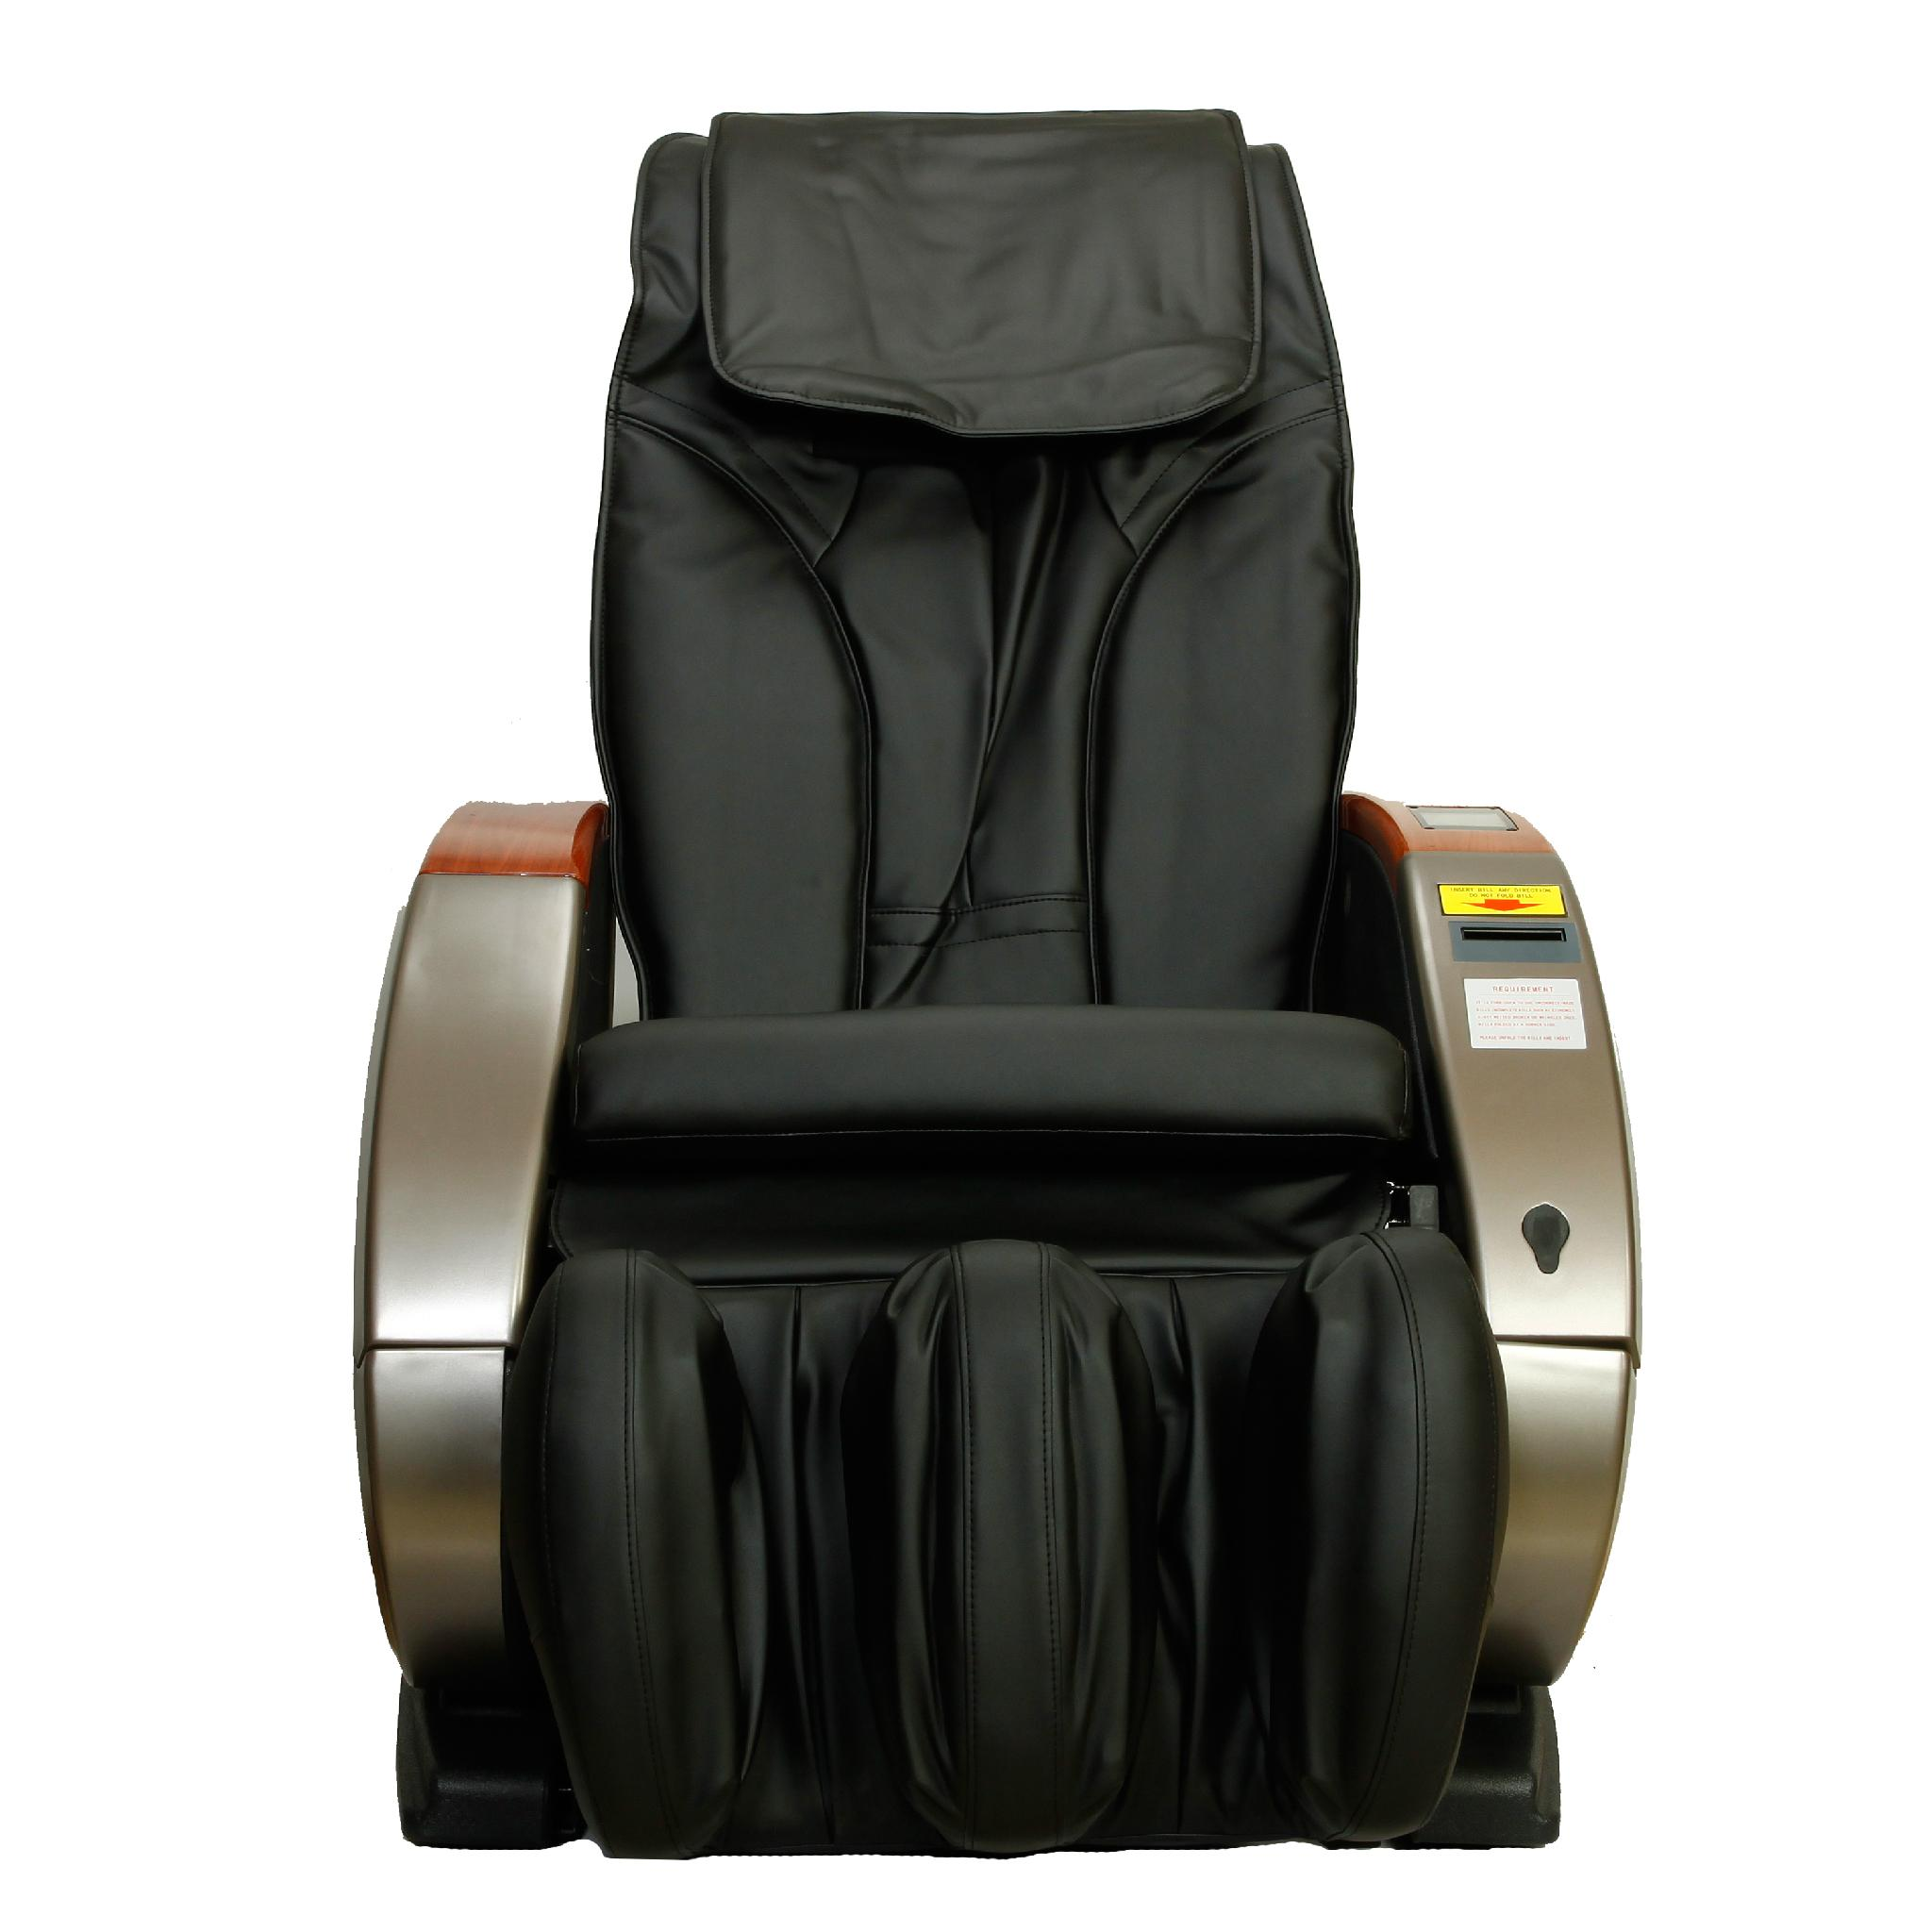 Bill Operated Massage Chair RT M02 MorningStar China